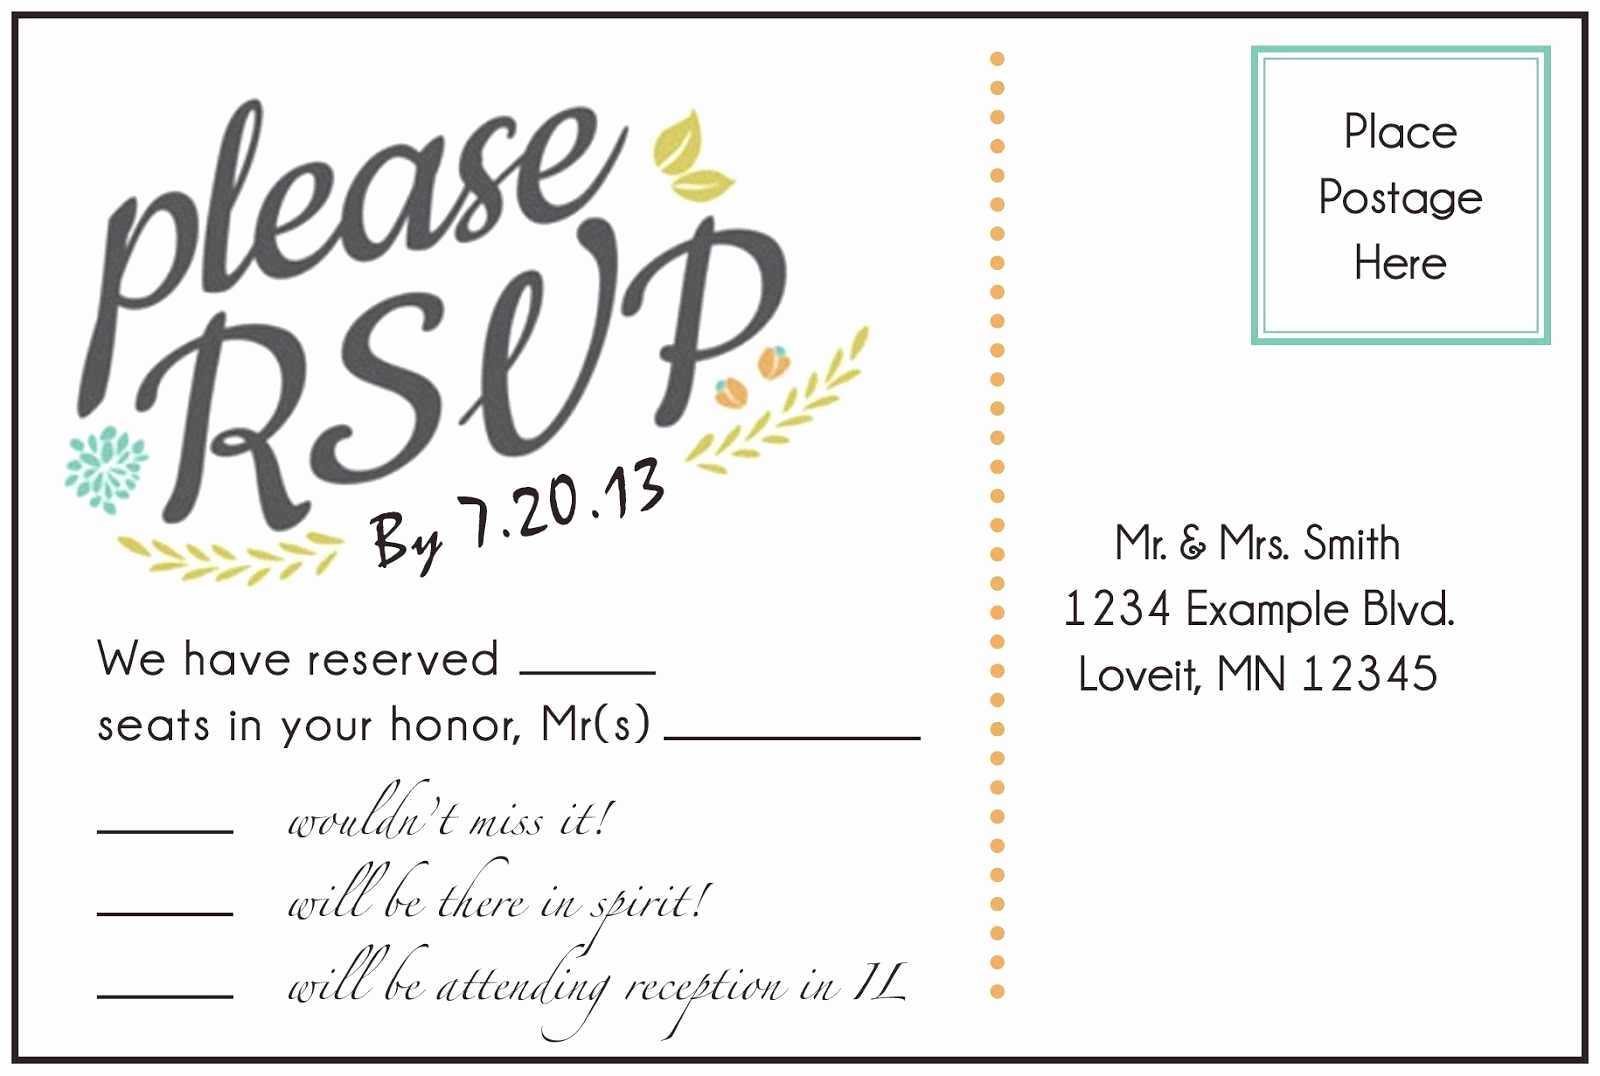 Wedding Rsvp Postcard Template Lovely 11 Awesome Business Reply Card Template